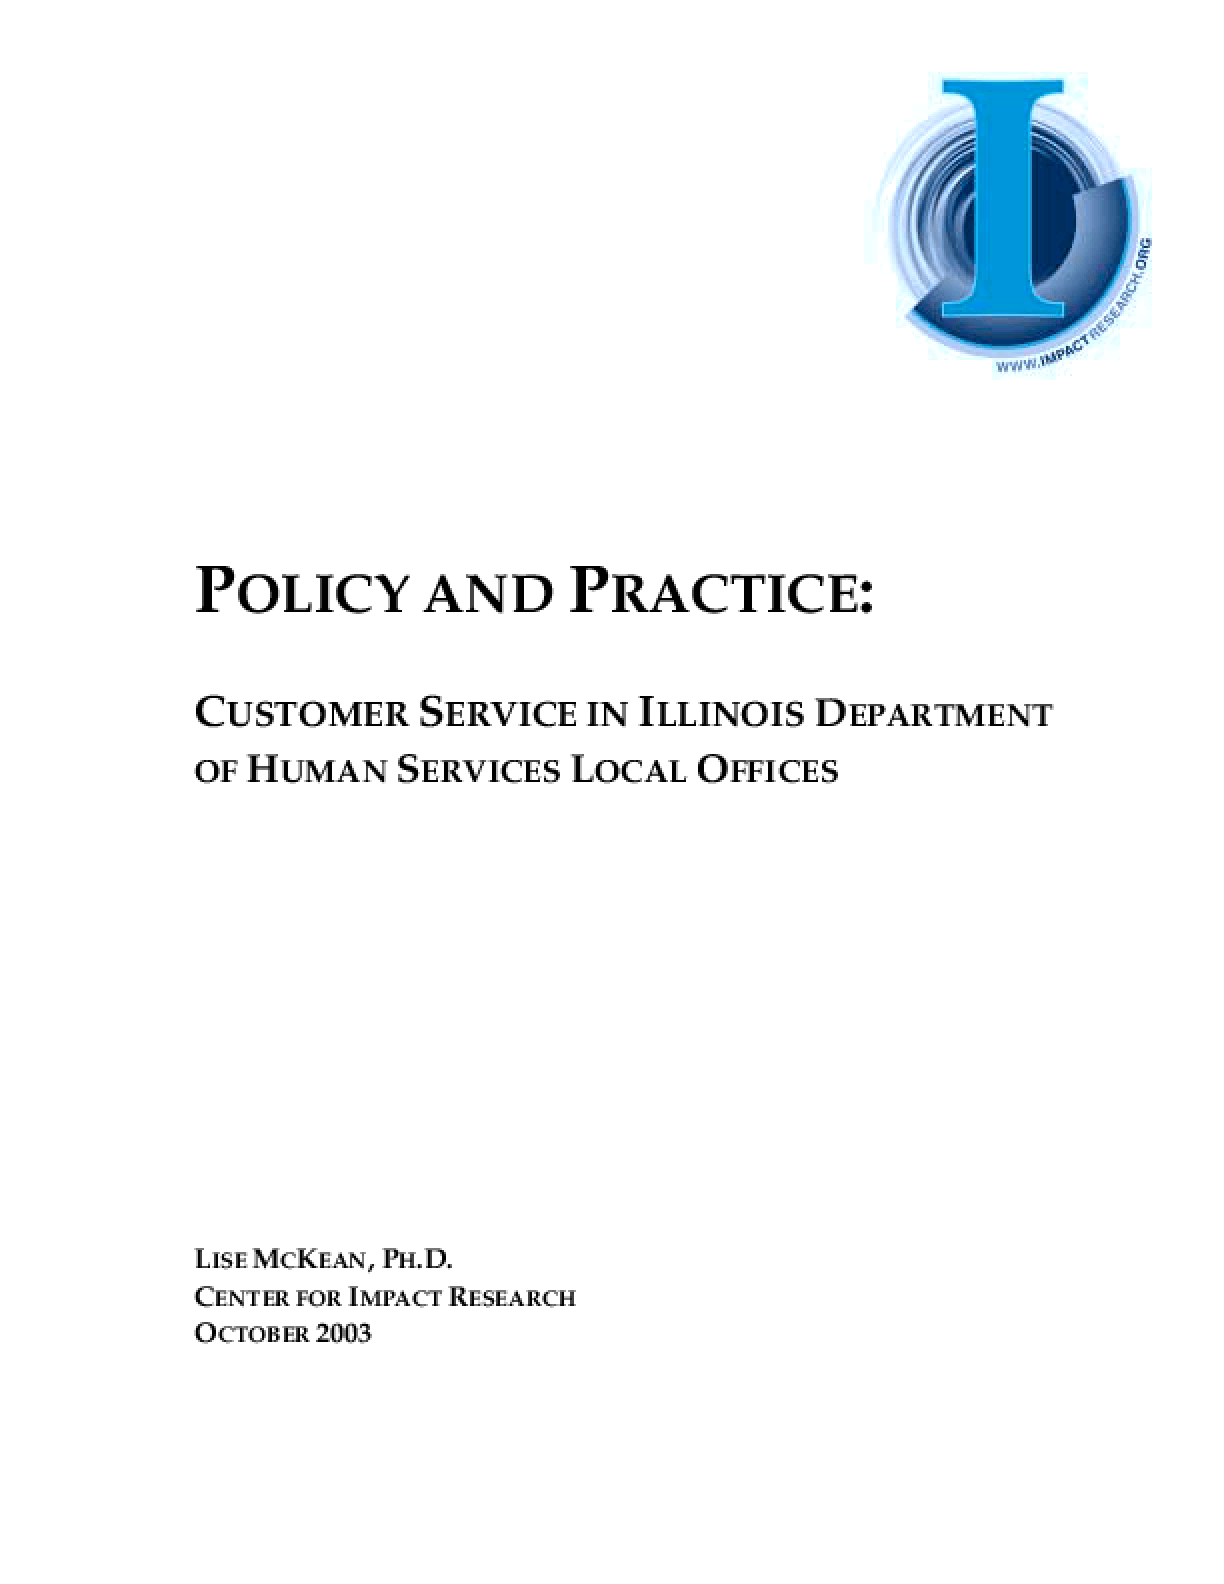 Policy and Practice: Customer Service in Illinois Department of Human Services Local Offices